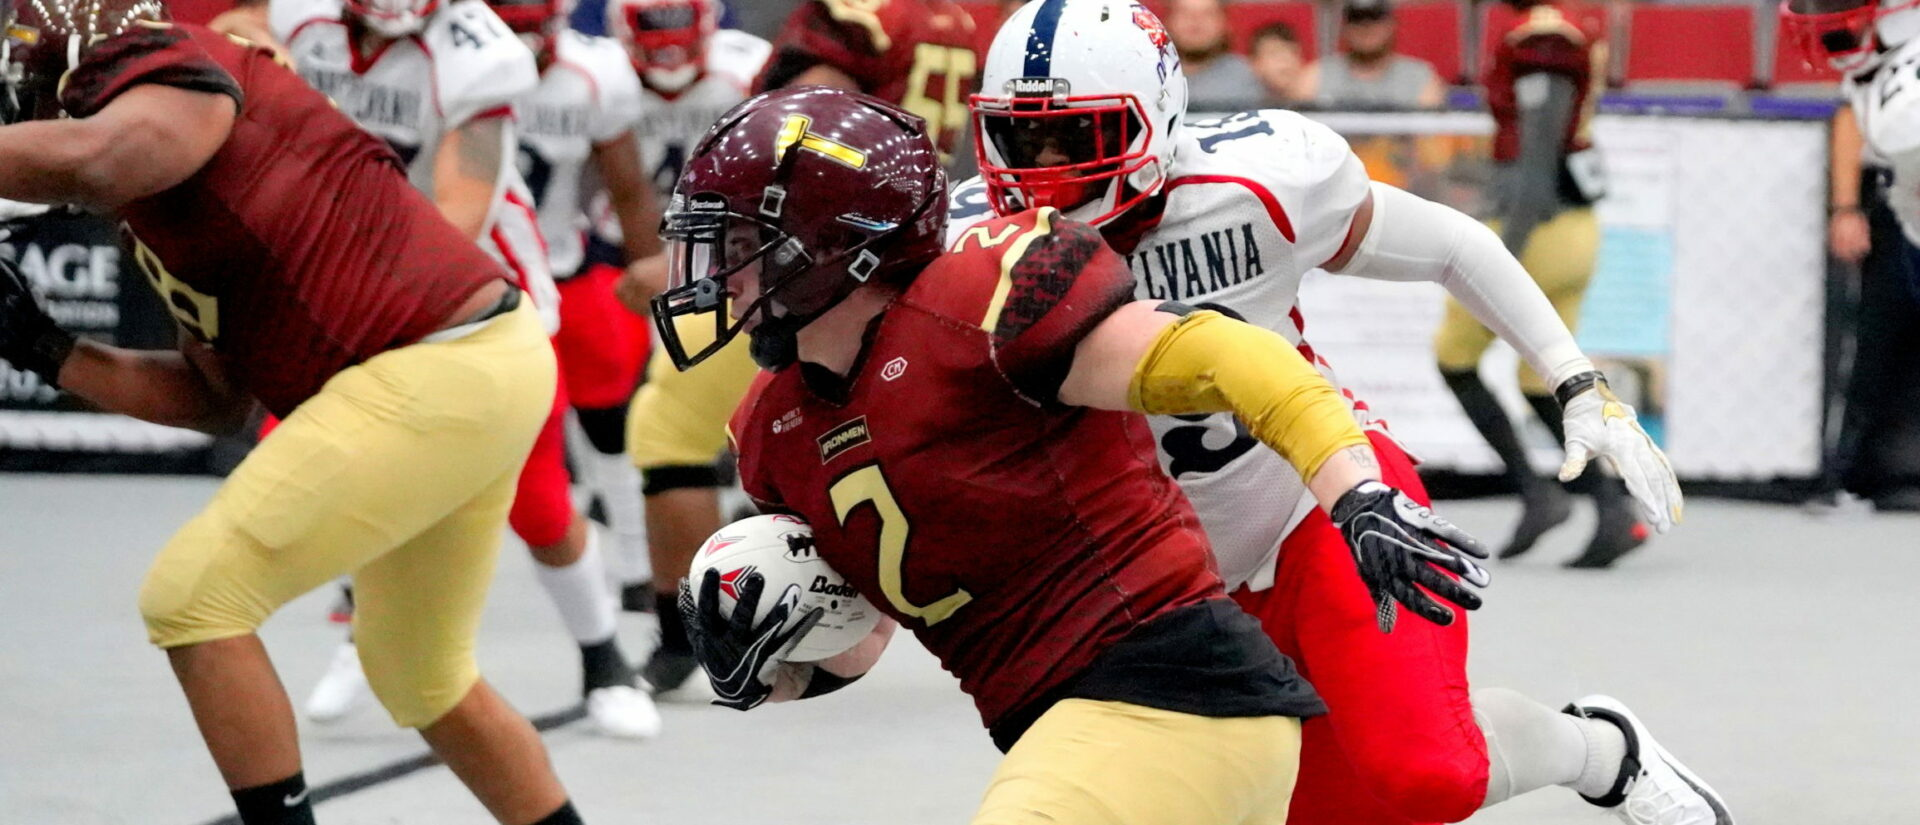 Ironmen get challenged for the first time this season and respond with a 55-26 victory over the Pennsylvania Union